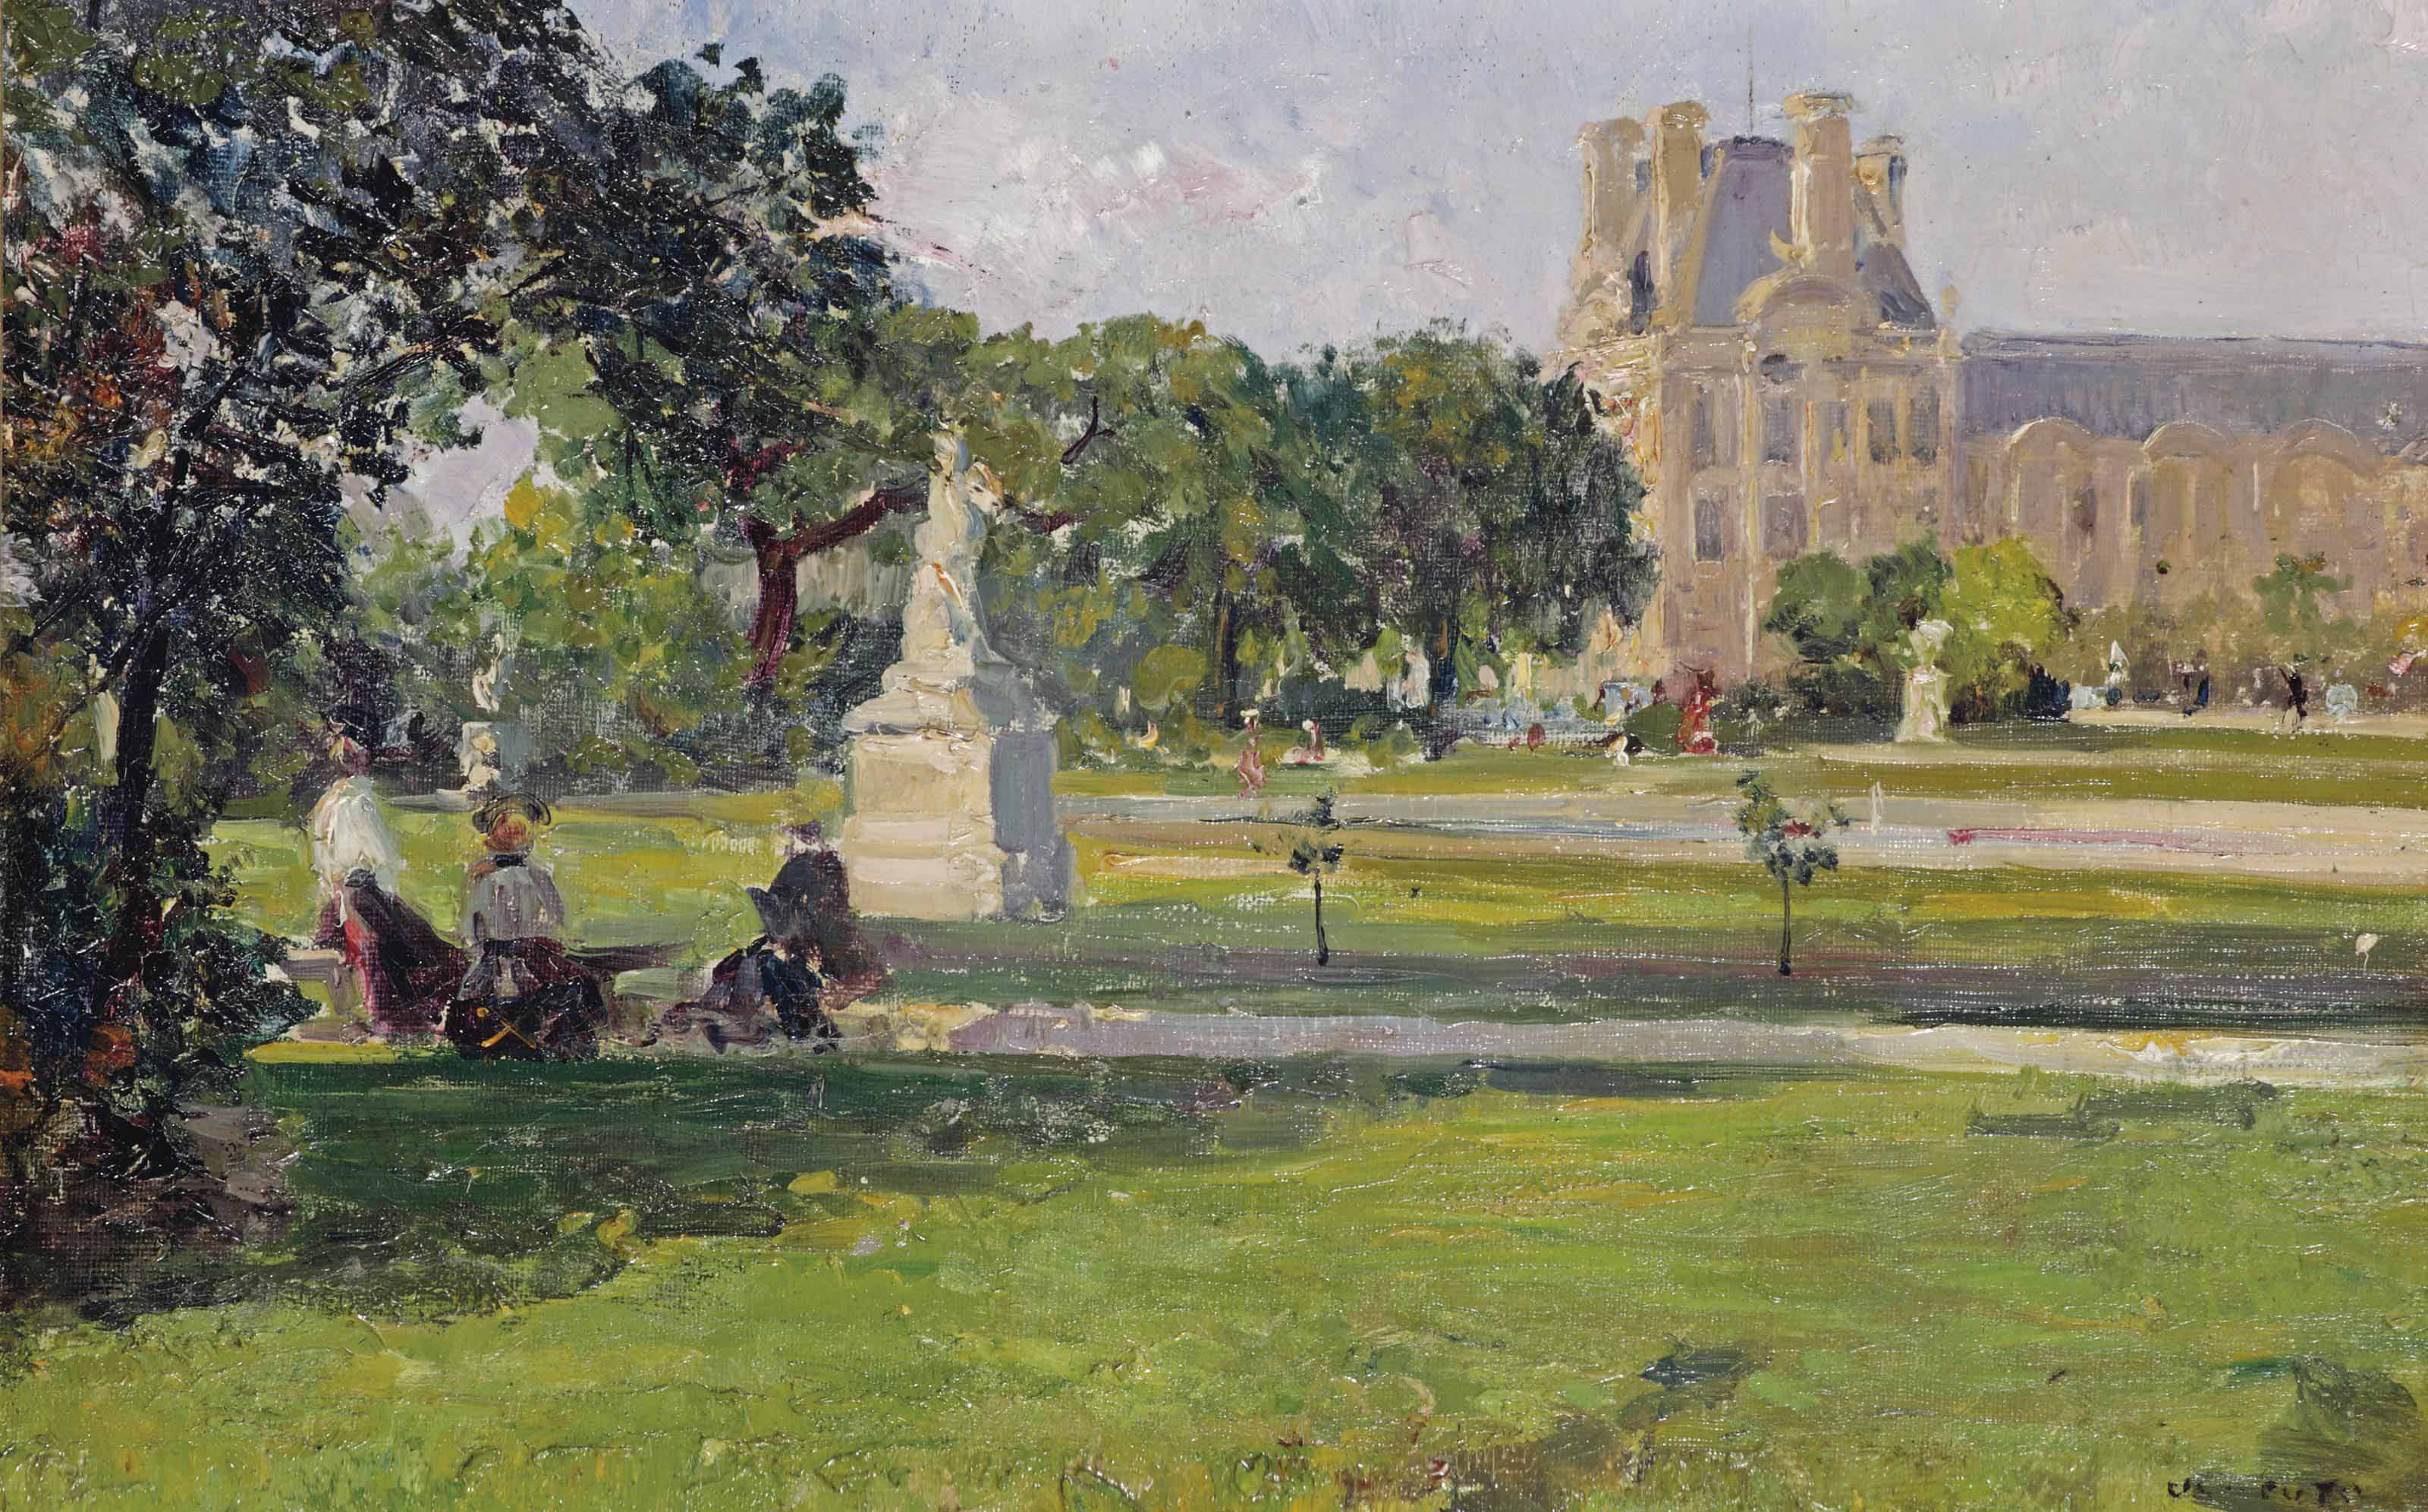 A quiet afternoon in the Tuileries gardens, with a view of the Louvre, Paris